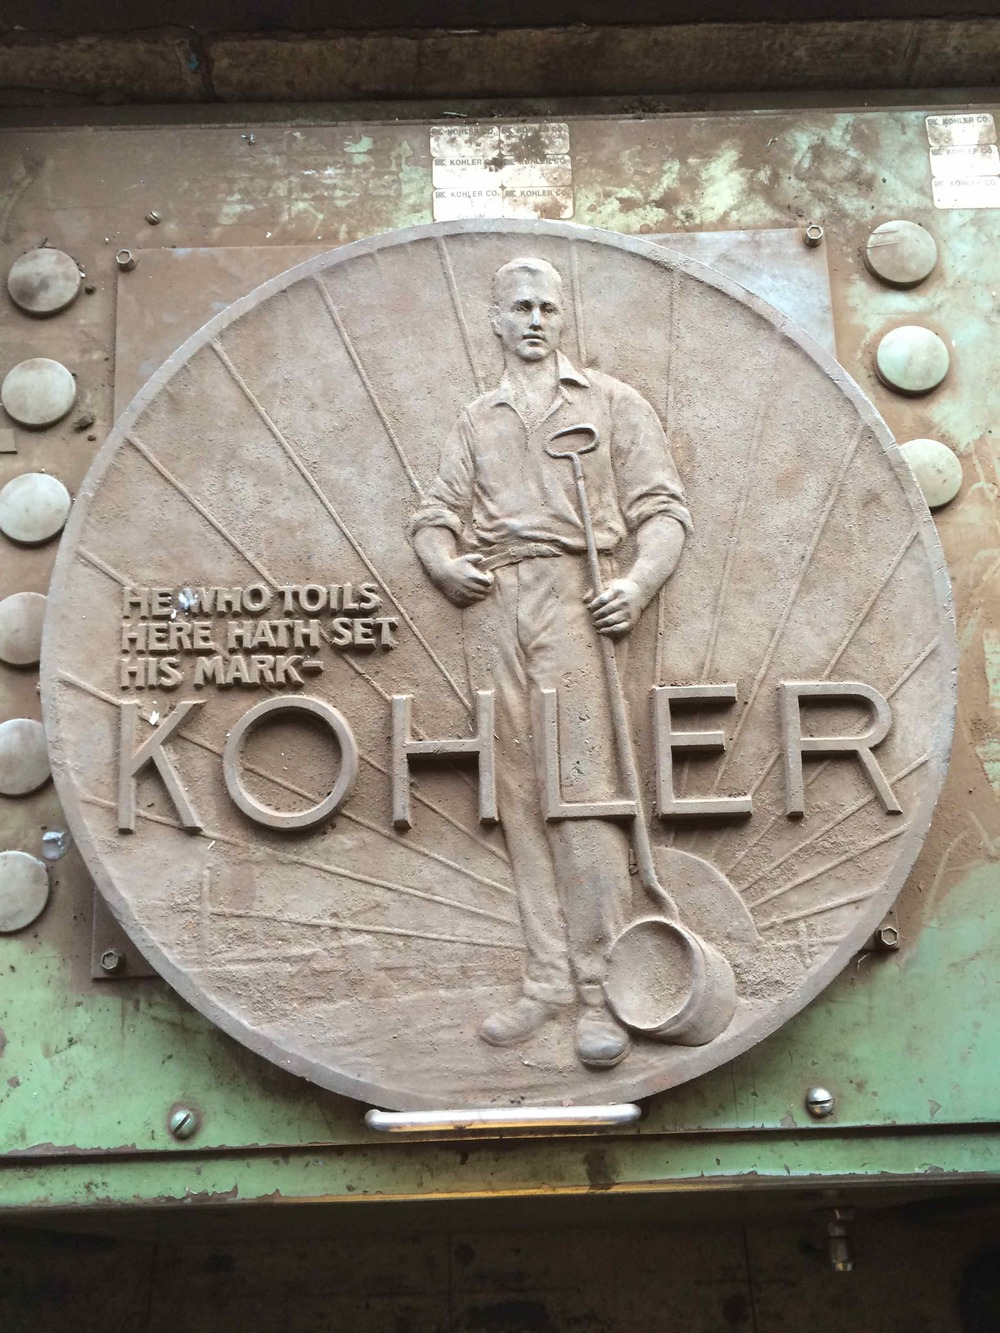 Plaque in Kohler Co.'s Foundry